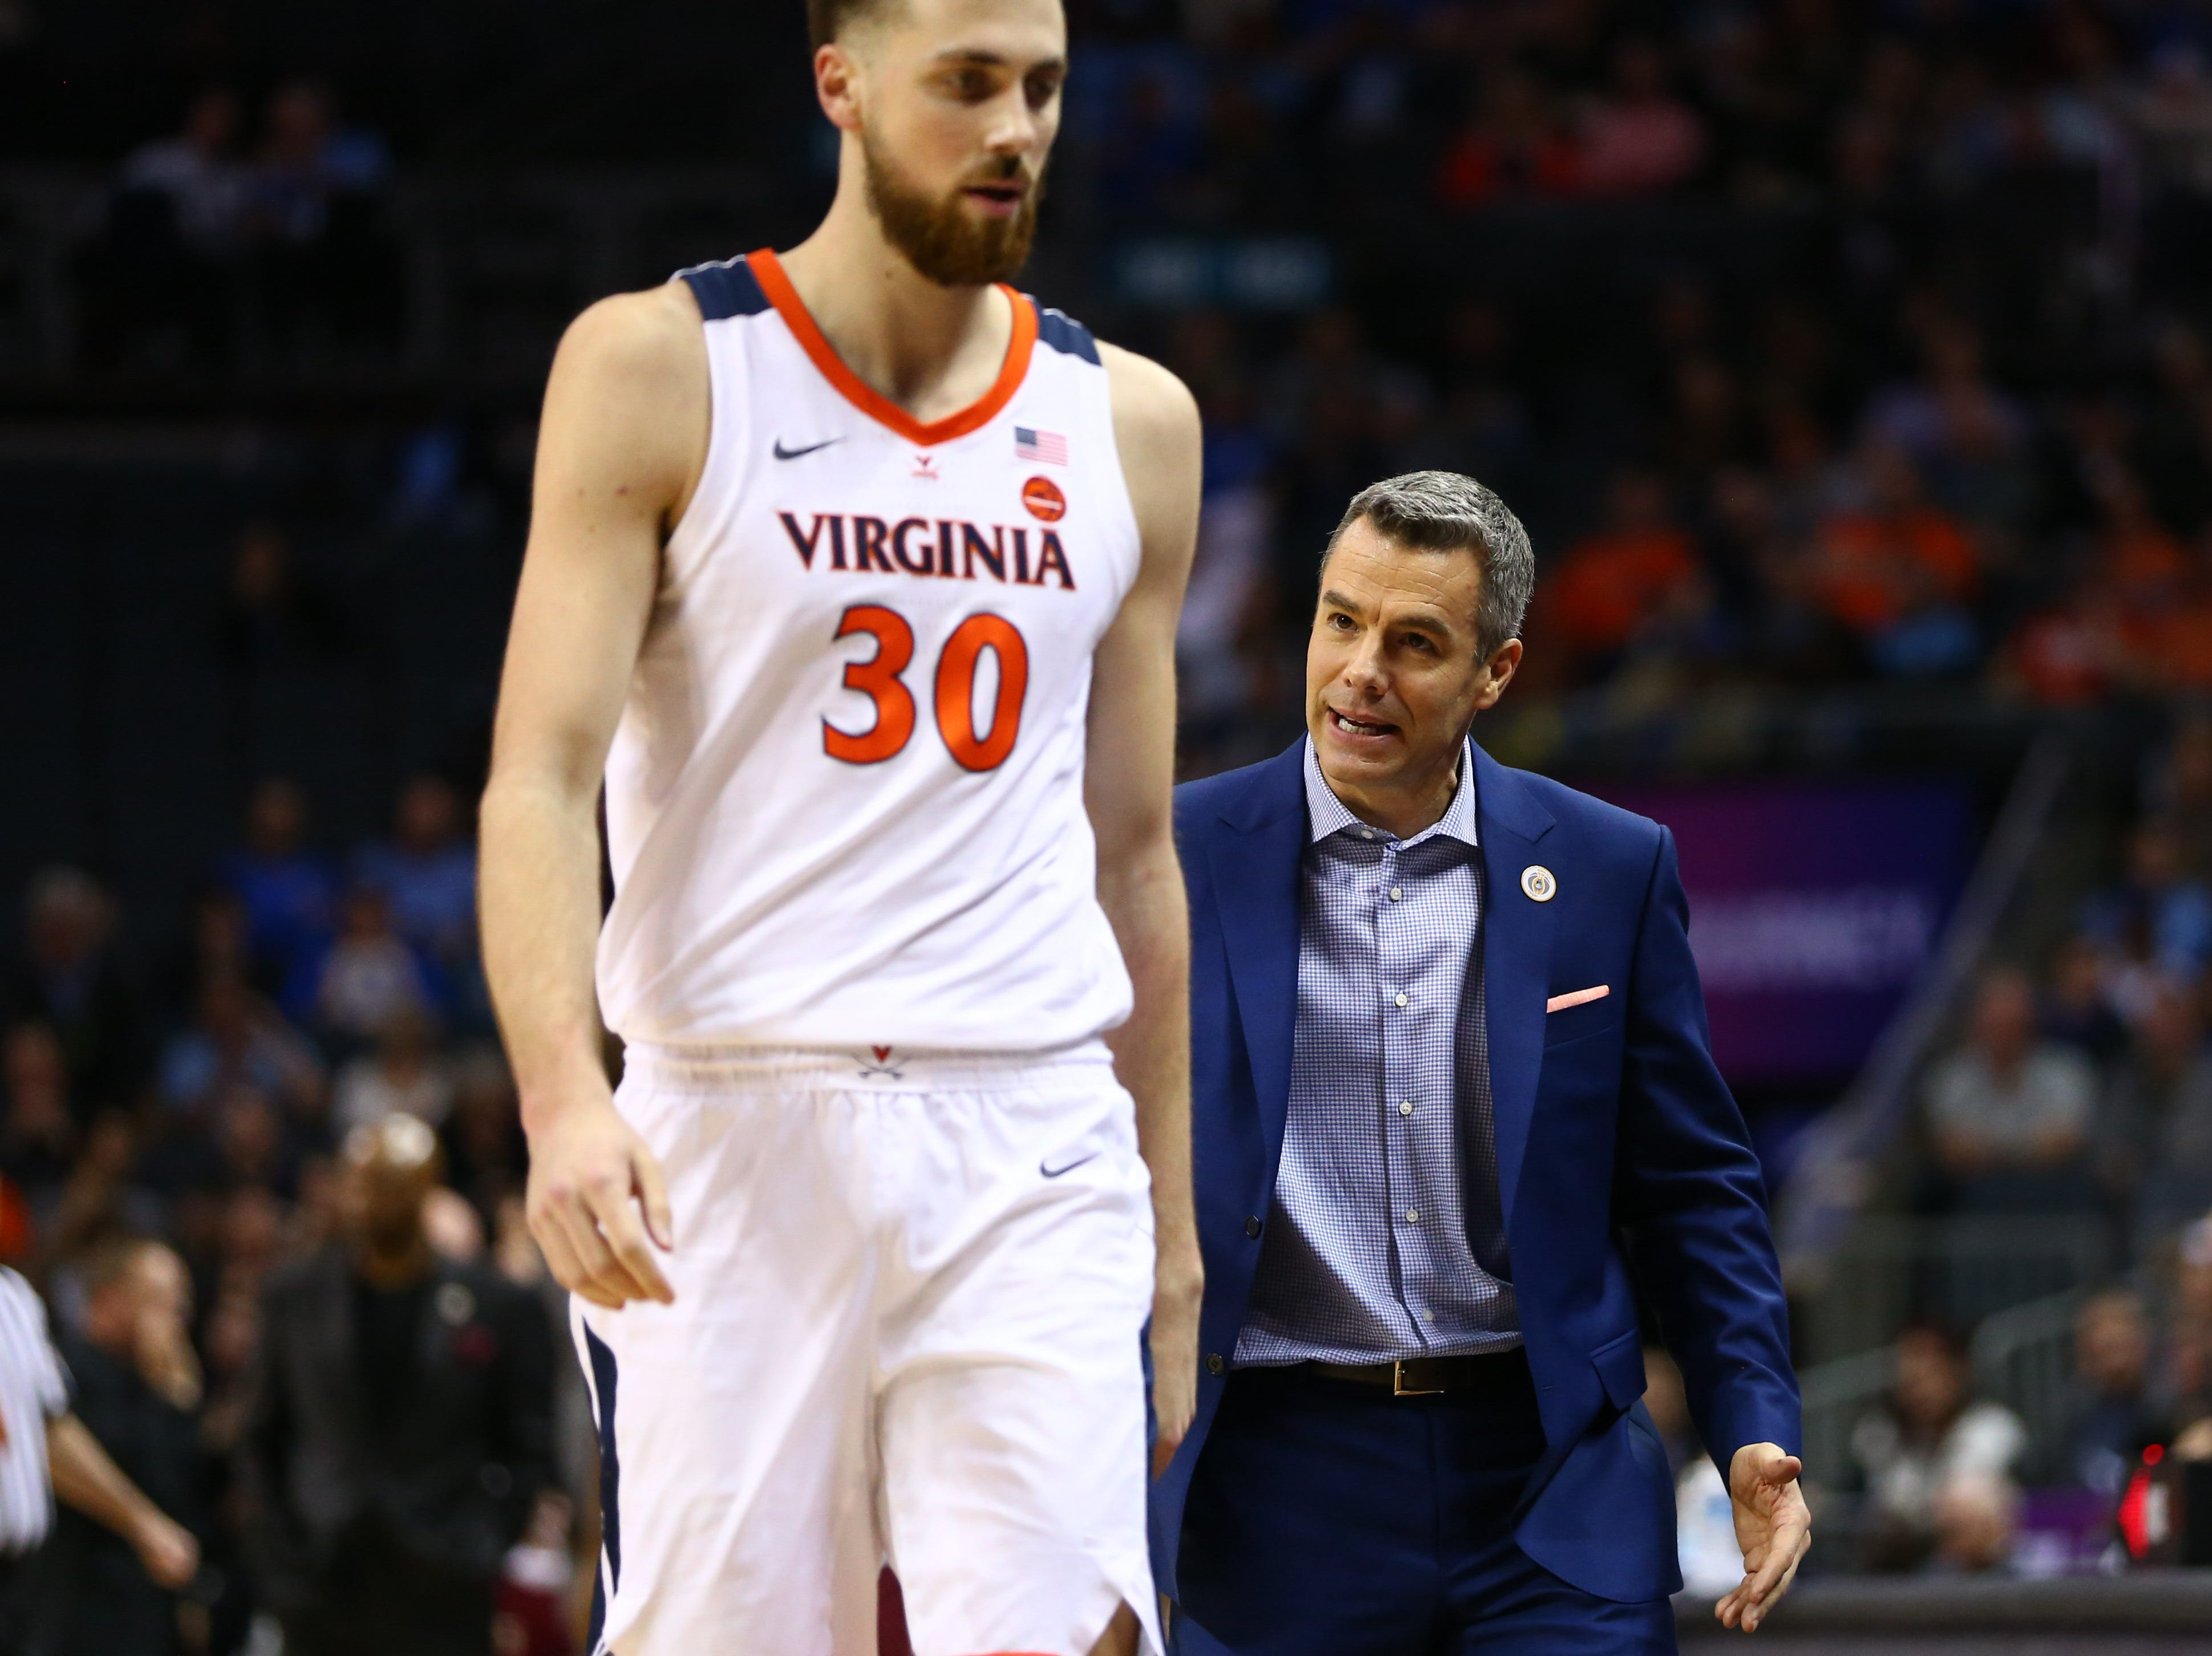 Mar 15, 2019; Charlotte, NC, USA; Virginia Cavaliers head coach Tony Bennett talks with forward Jay Huff (30) in the first half against the Florida State Seminoles in the ACC conference tournament at Spectrum Center. Mandatory Credit: Jeremy Brevard-USA TODAY Sports